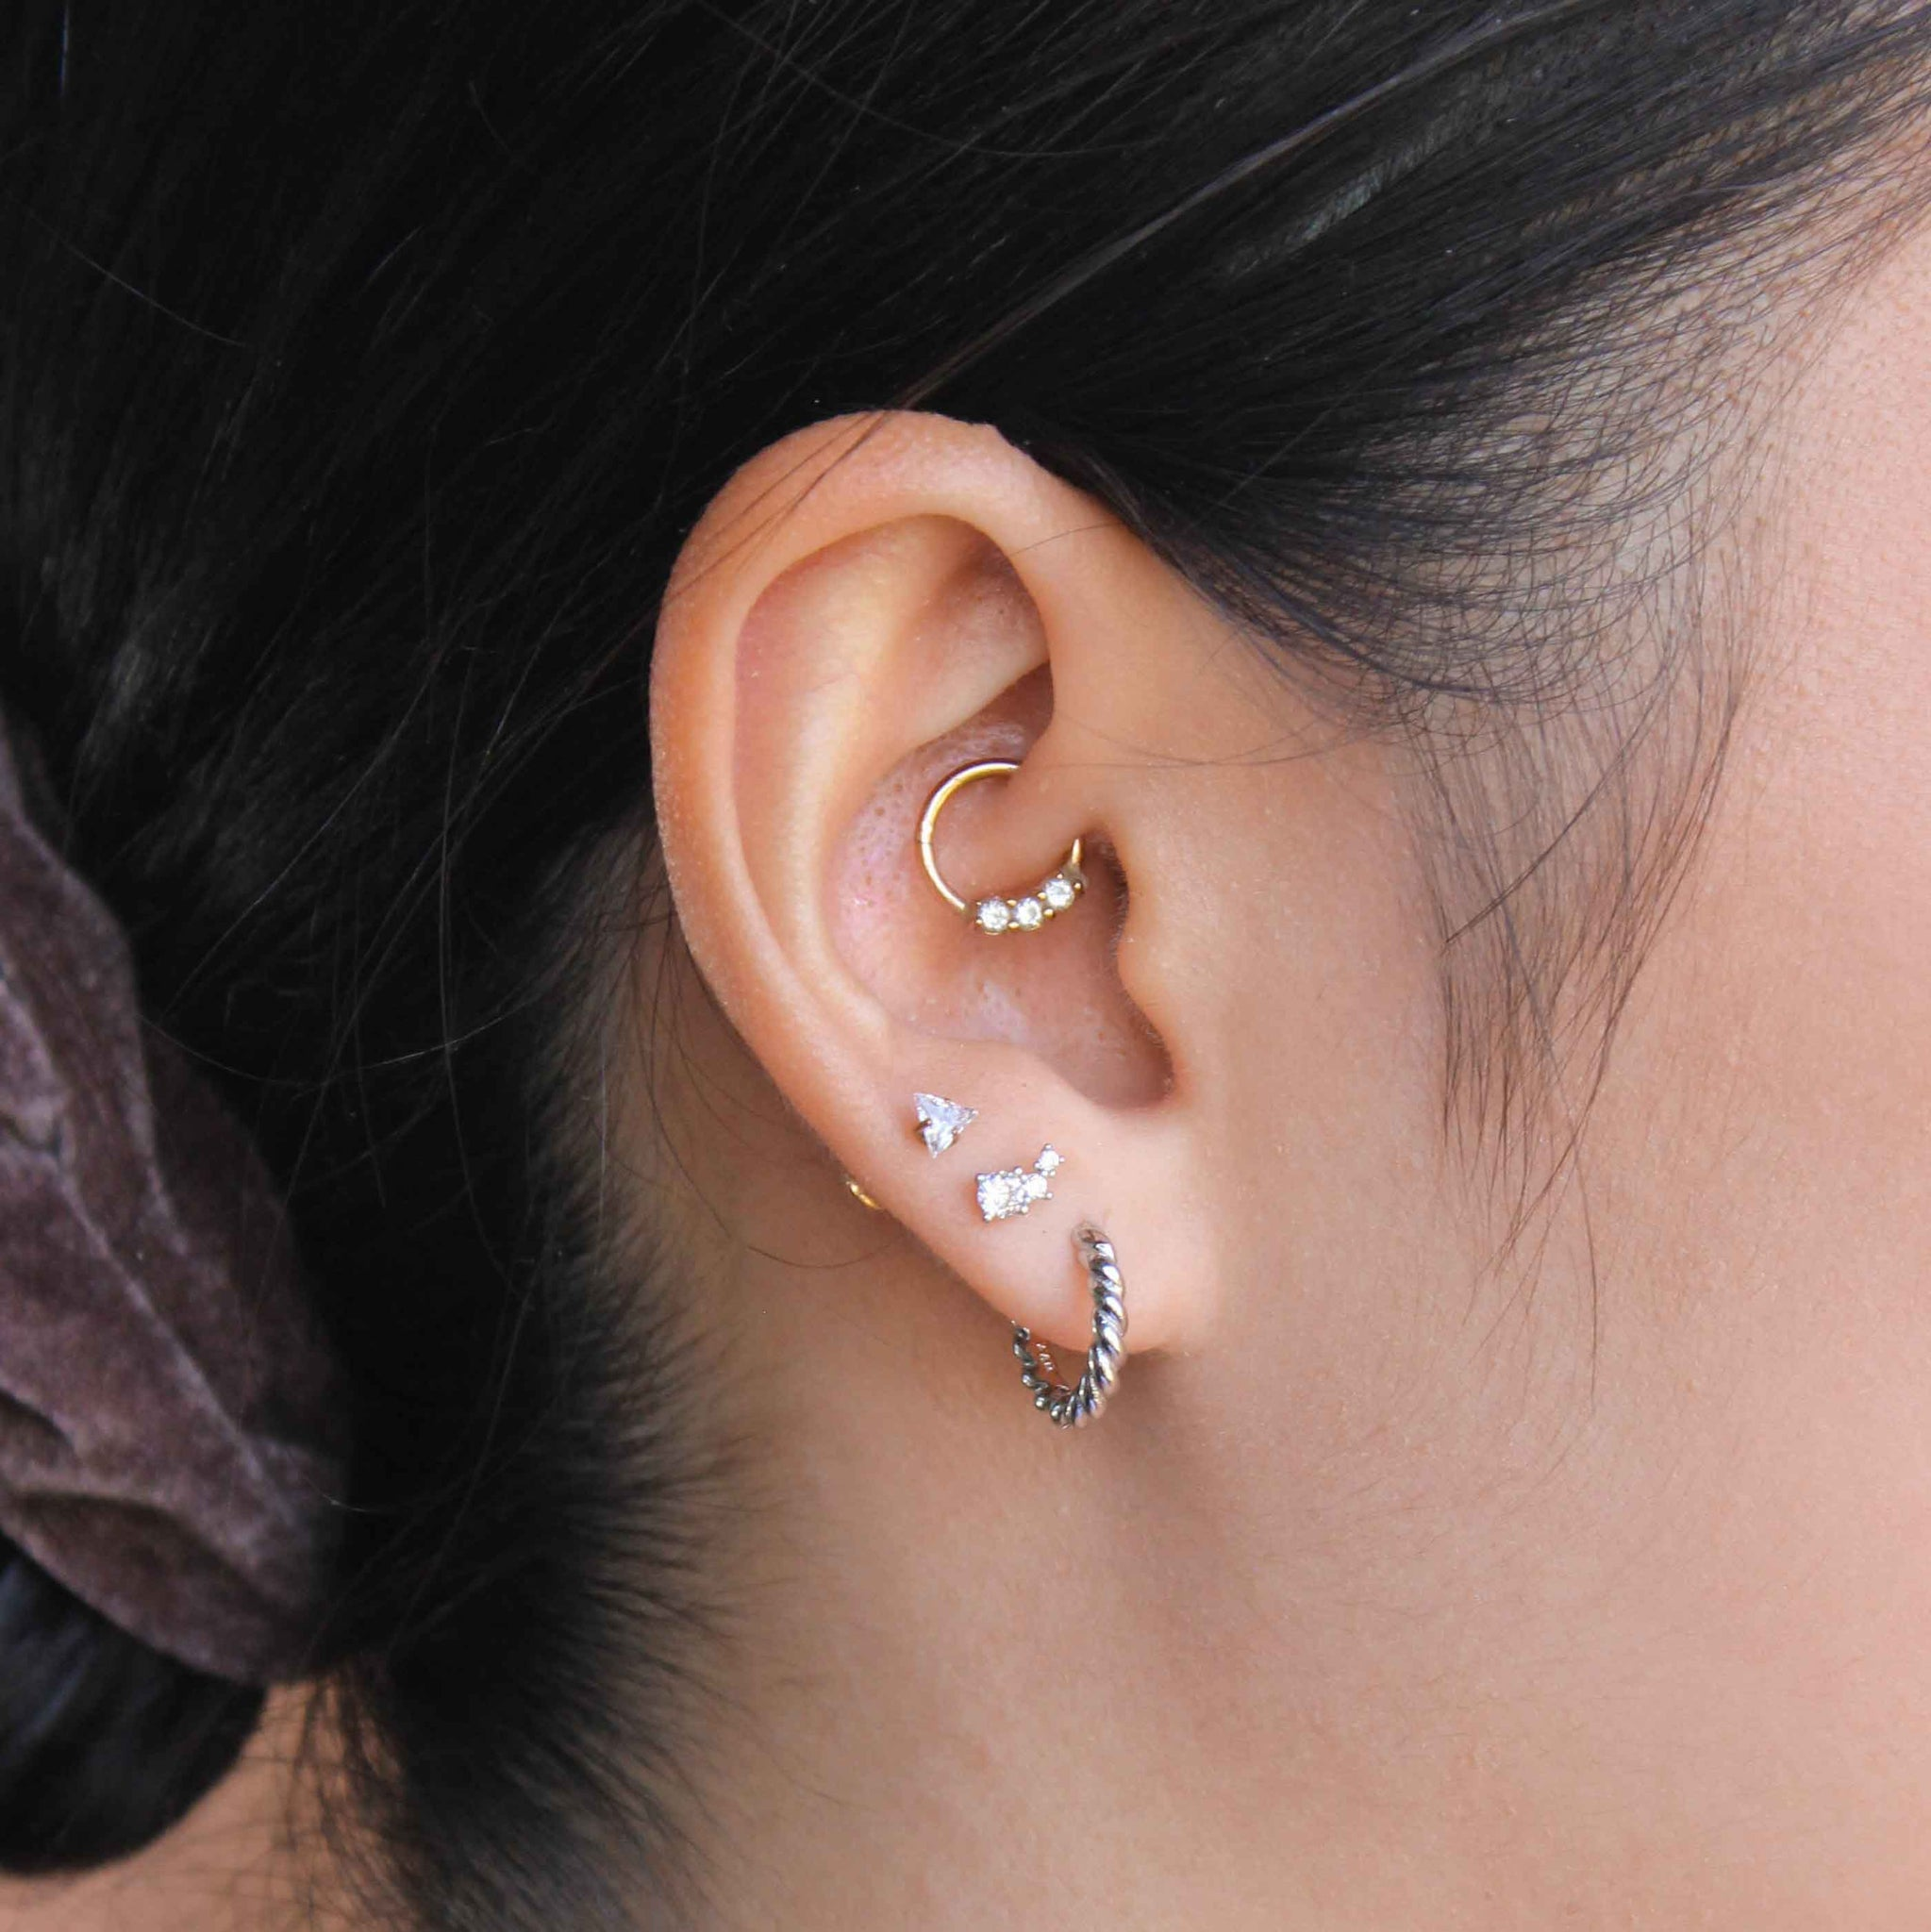 Crystal & Double Stone Barbell in Silver worn in second lobe piercing